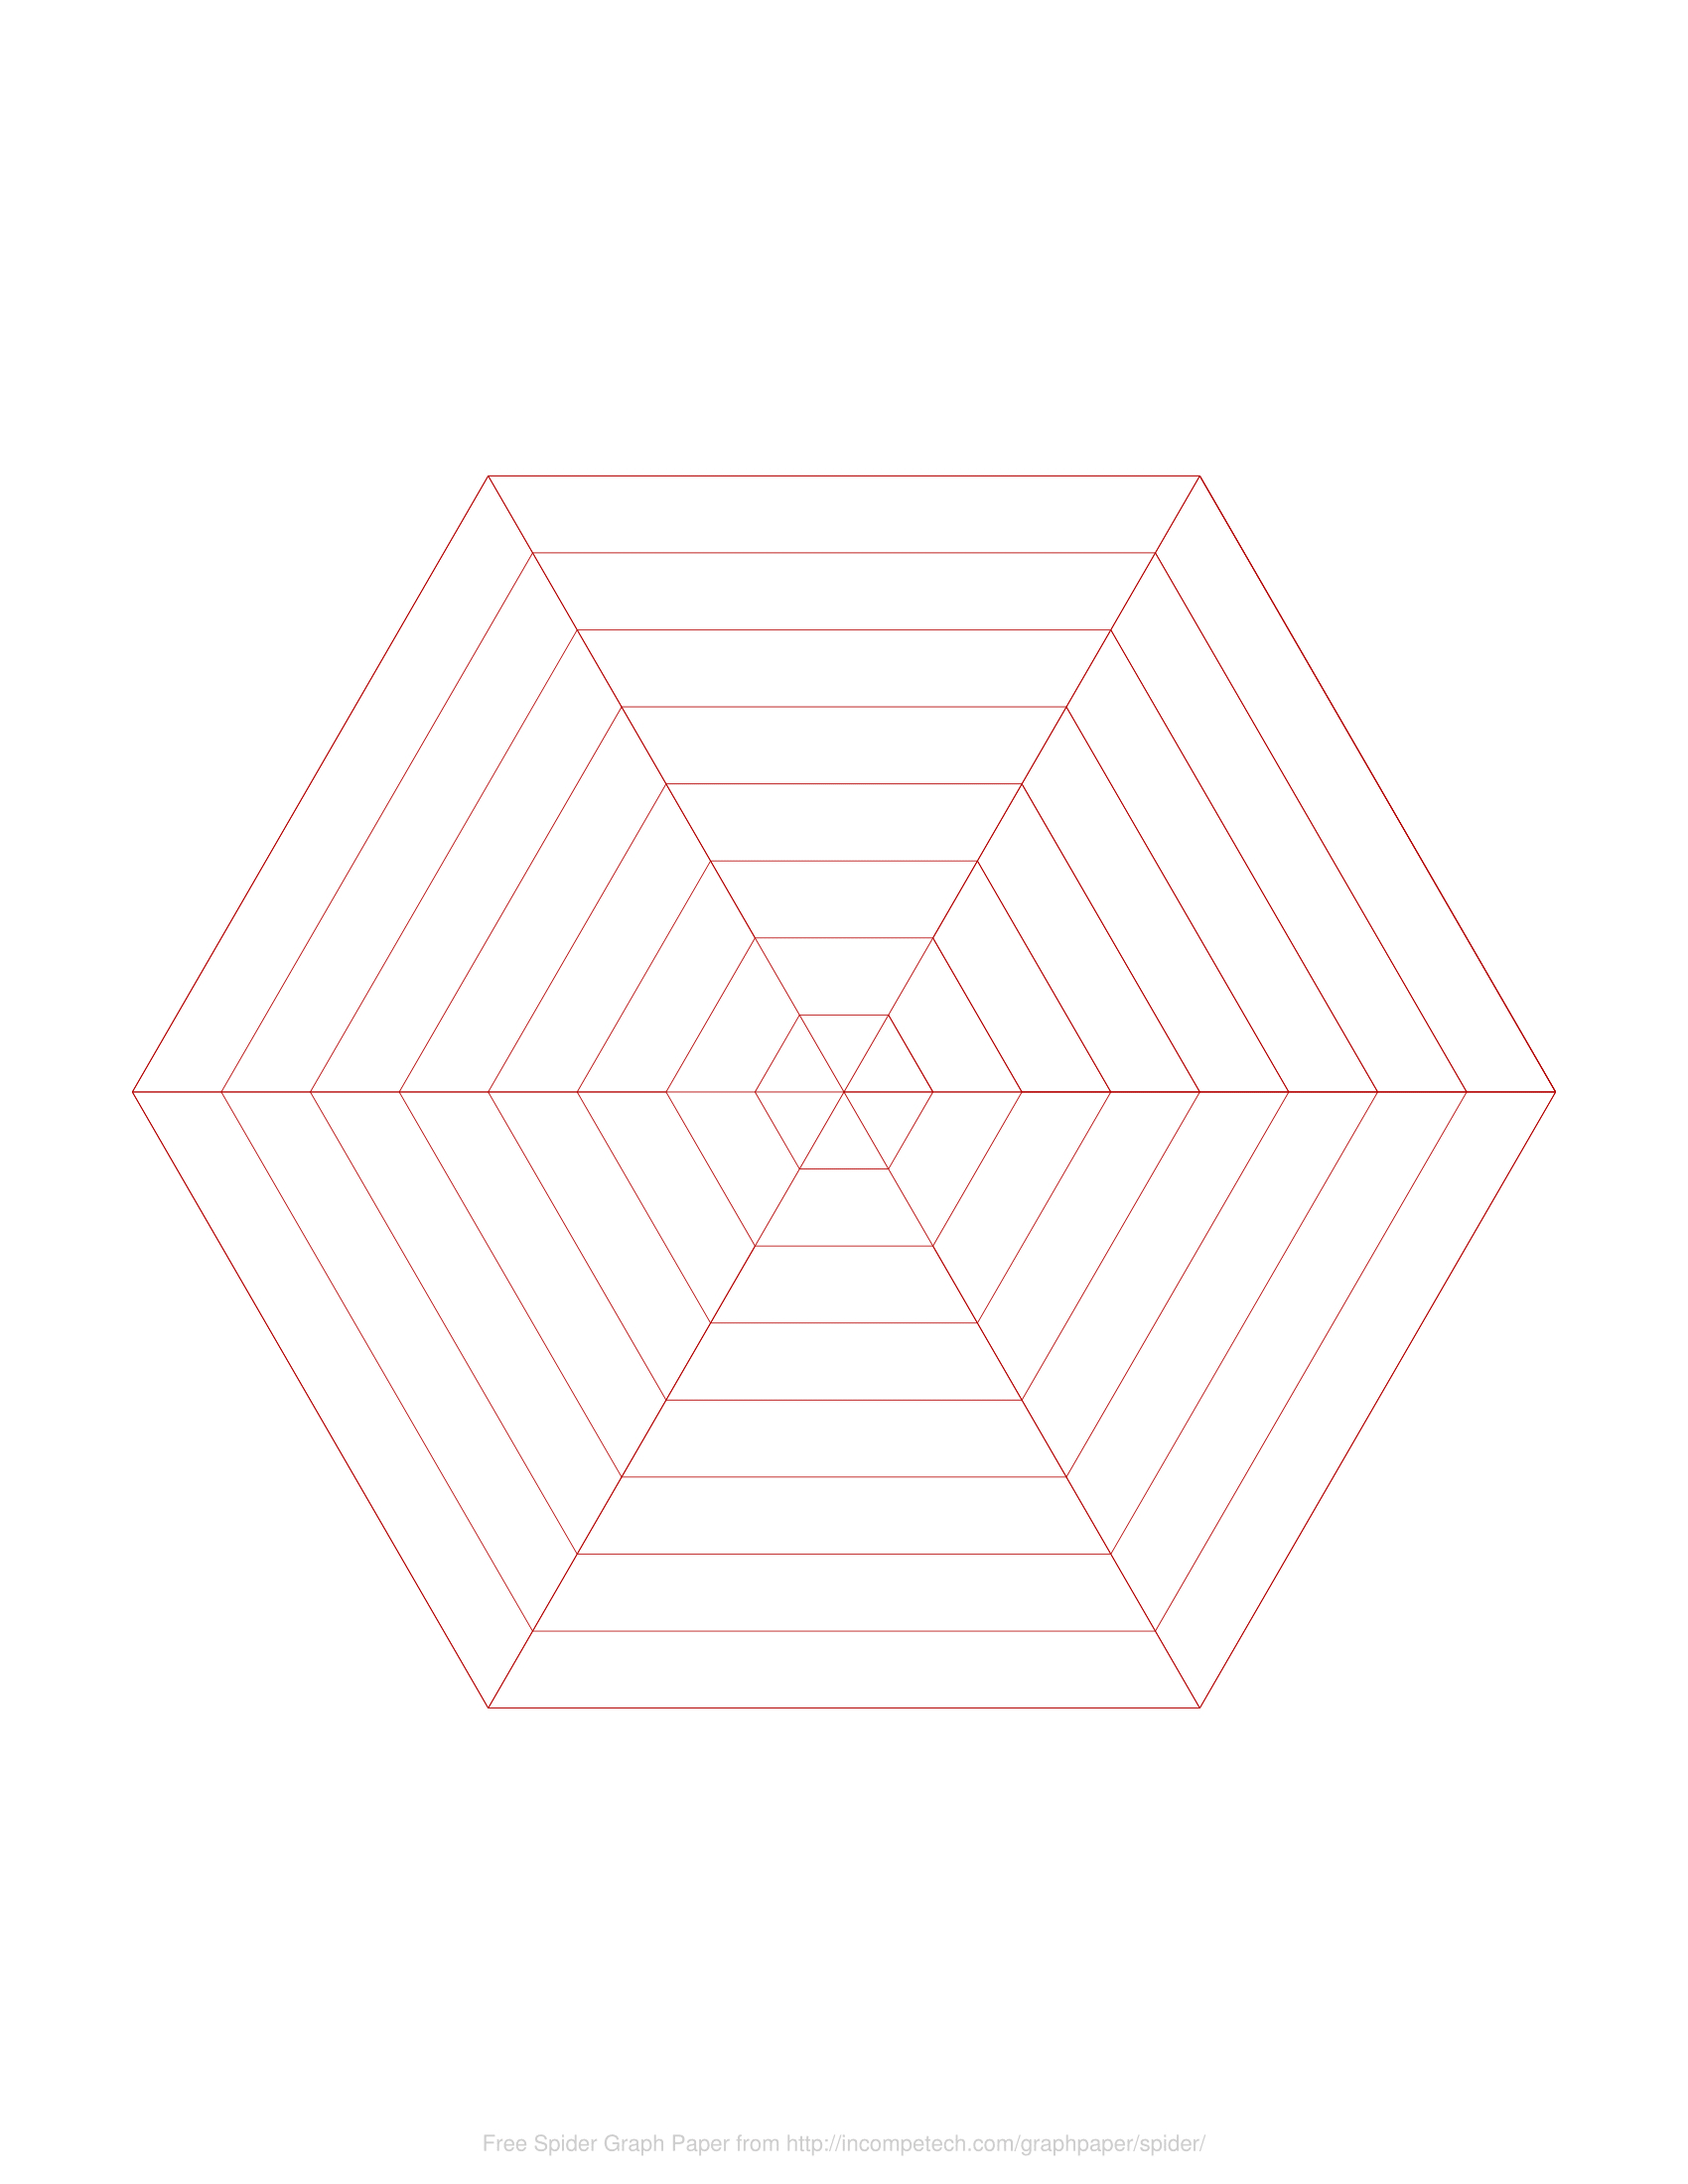 Free Online Graph Paper / Spider Intended For Blank Radar Chart Template